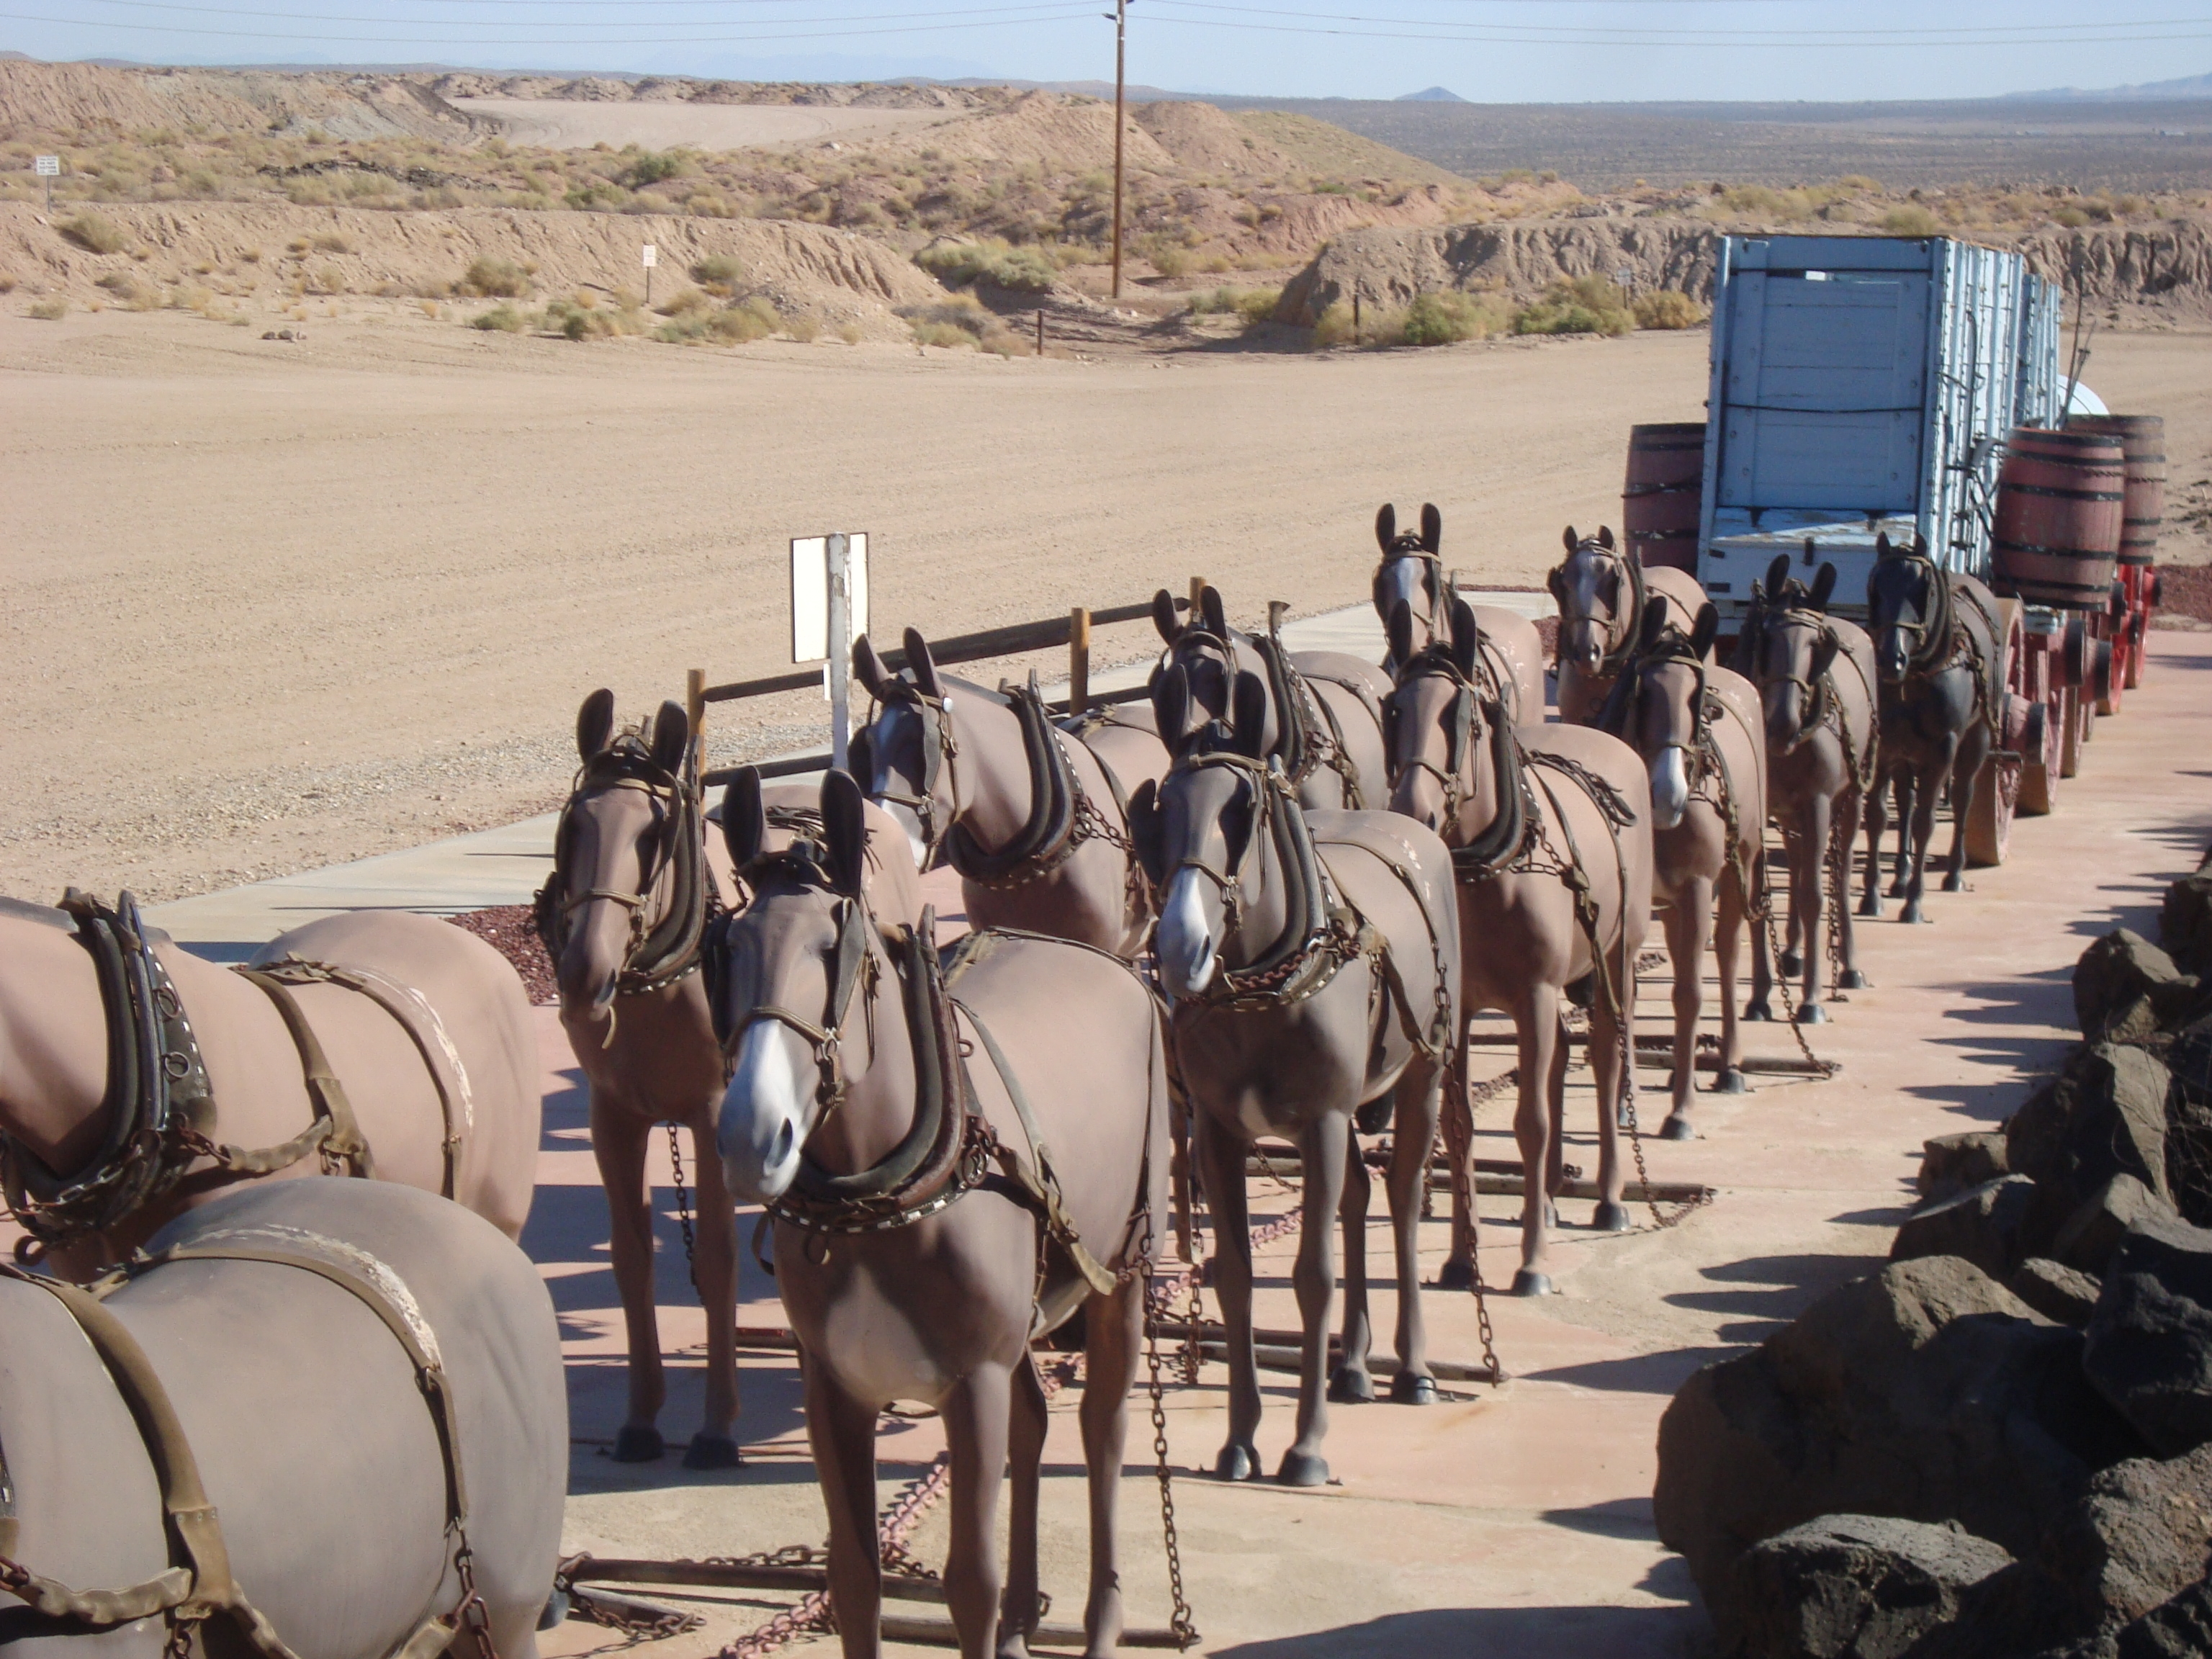 The Twenty Mule Team